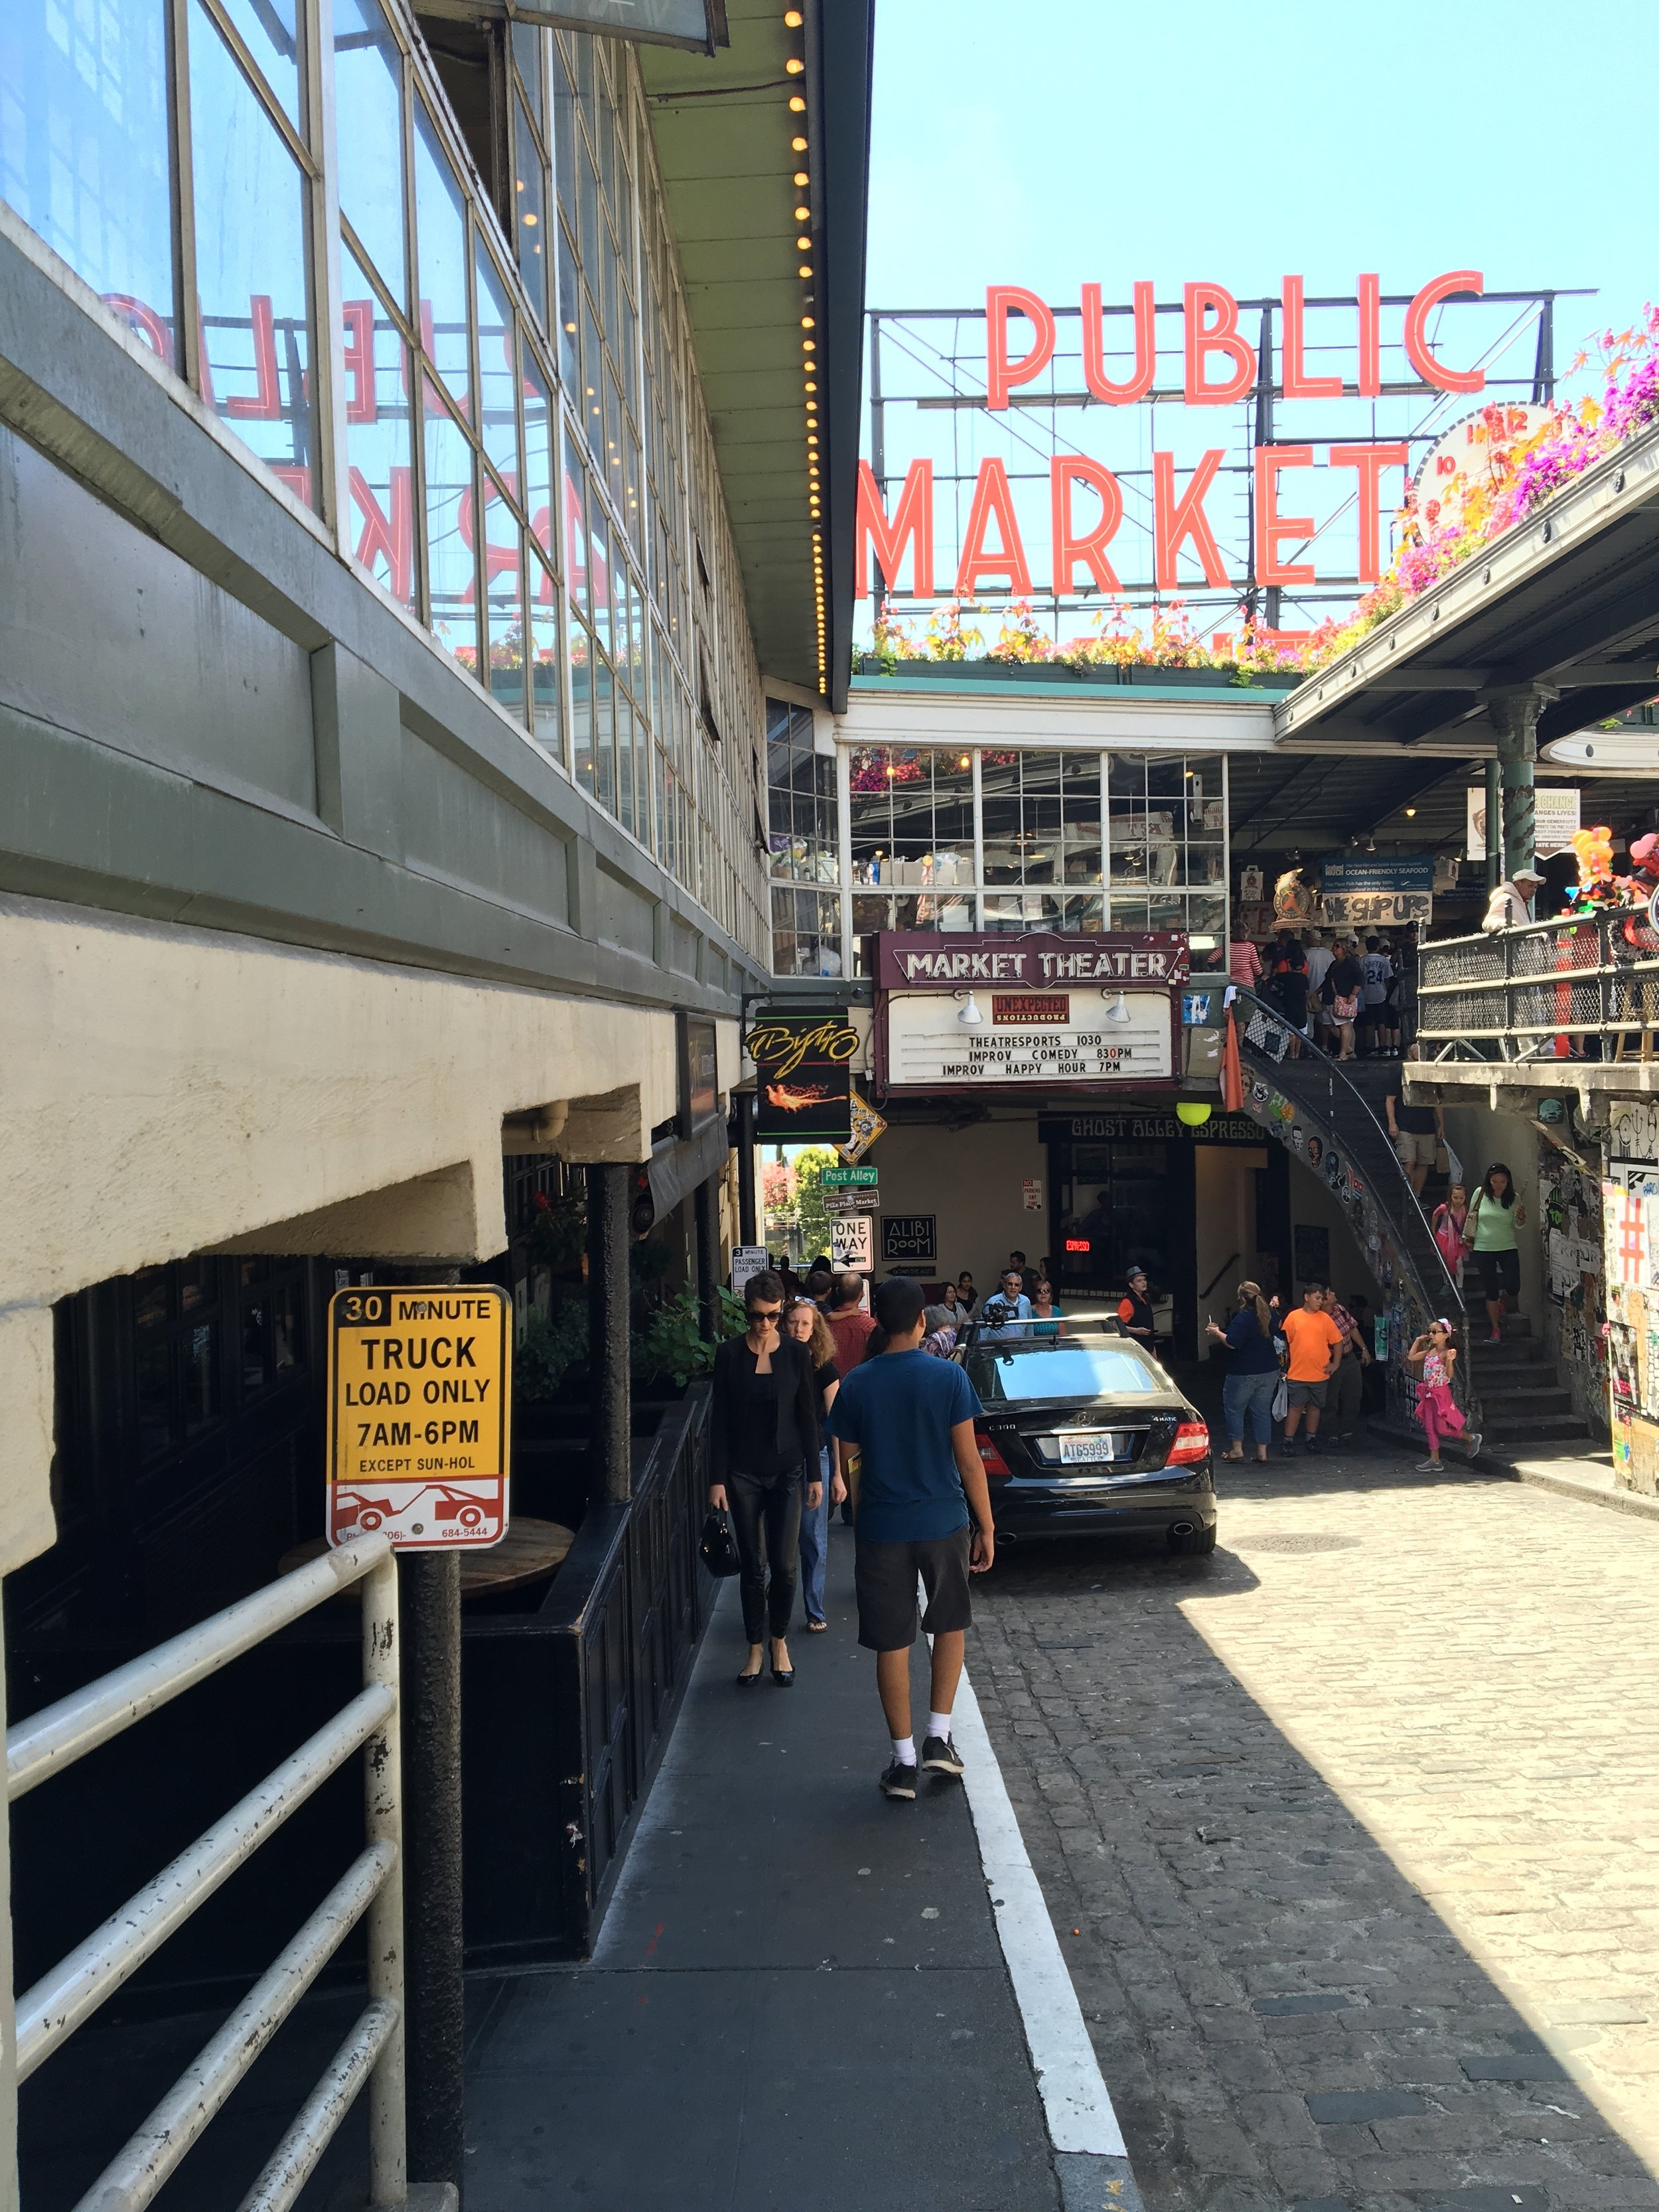 The Gum Wall is immediately to the left of the Market Theater sign.